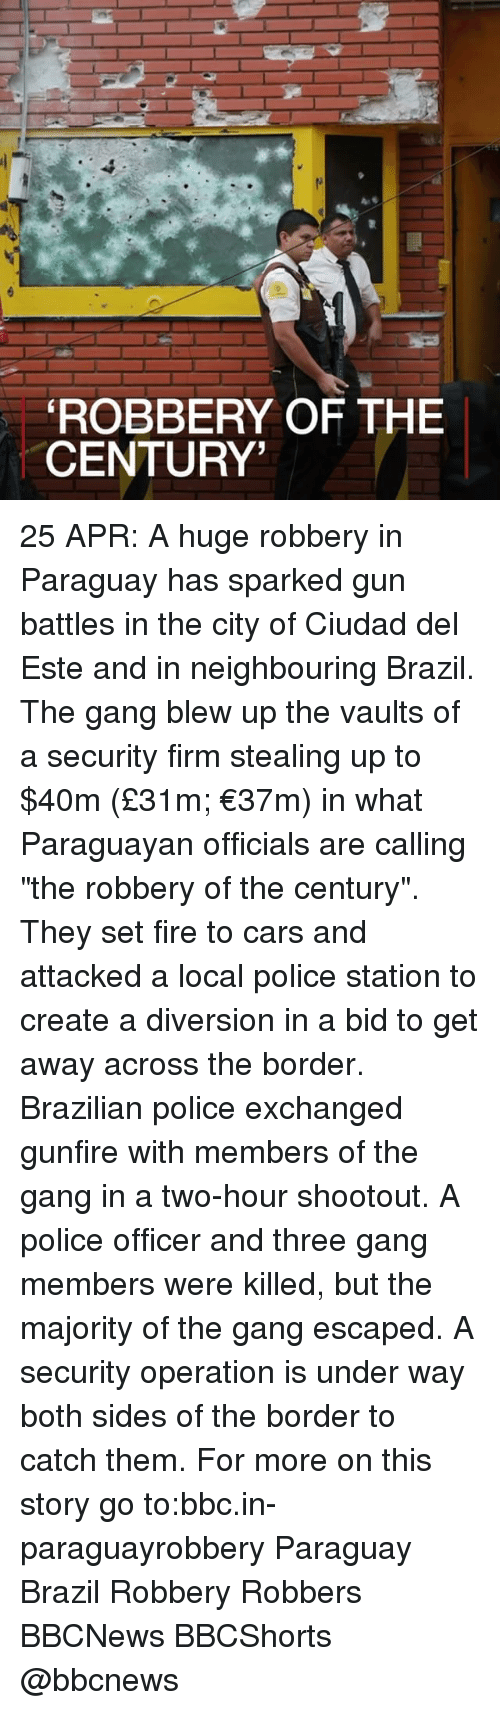 """Diversion: ROBBERY OF THE  CENTURY' 25 APR: A huge robbery in Paraguay has sparked gun battles in the city of Ciudad del Este and in neighbouring Brazil. The gang blew up the vaults of a security firm stealing up to $40m (£31m; €37m) in what Paraguayan officials are calling """"the robbery of the century"""". They set fire to cars and attacked a local police station to create a diversion in a bid to get away across the border. Brazilian police exchanged gunfire with members of the gang in a two-hour shootout. A police officer and three gang members were killed, but the majority of the gang escaped. A security operation is under way both sides of the border to catch them. For more on this story go to:bbc.in-paraguayrobbery Paraguay Brazil Robbery Robbers BBCNews BBCShorts @bbcnews"""